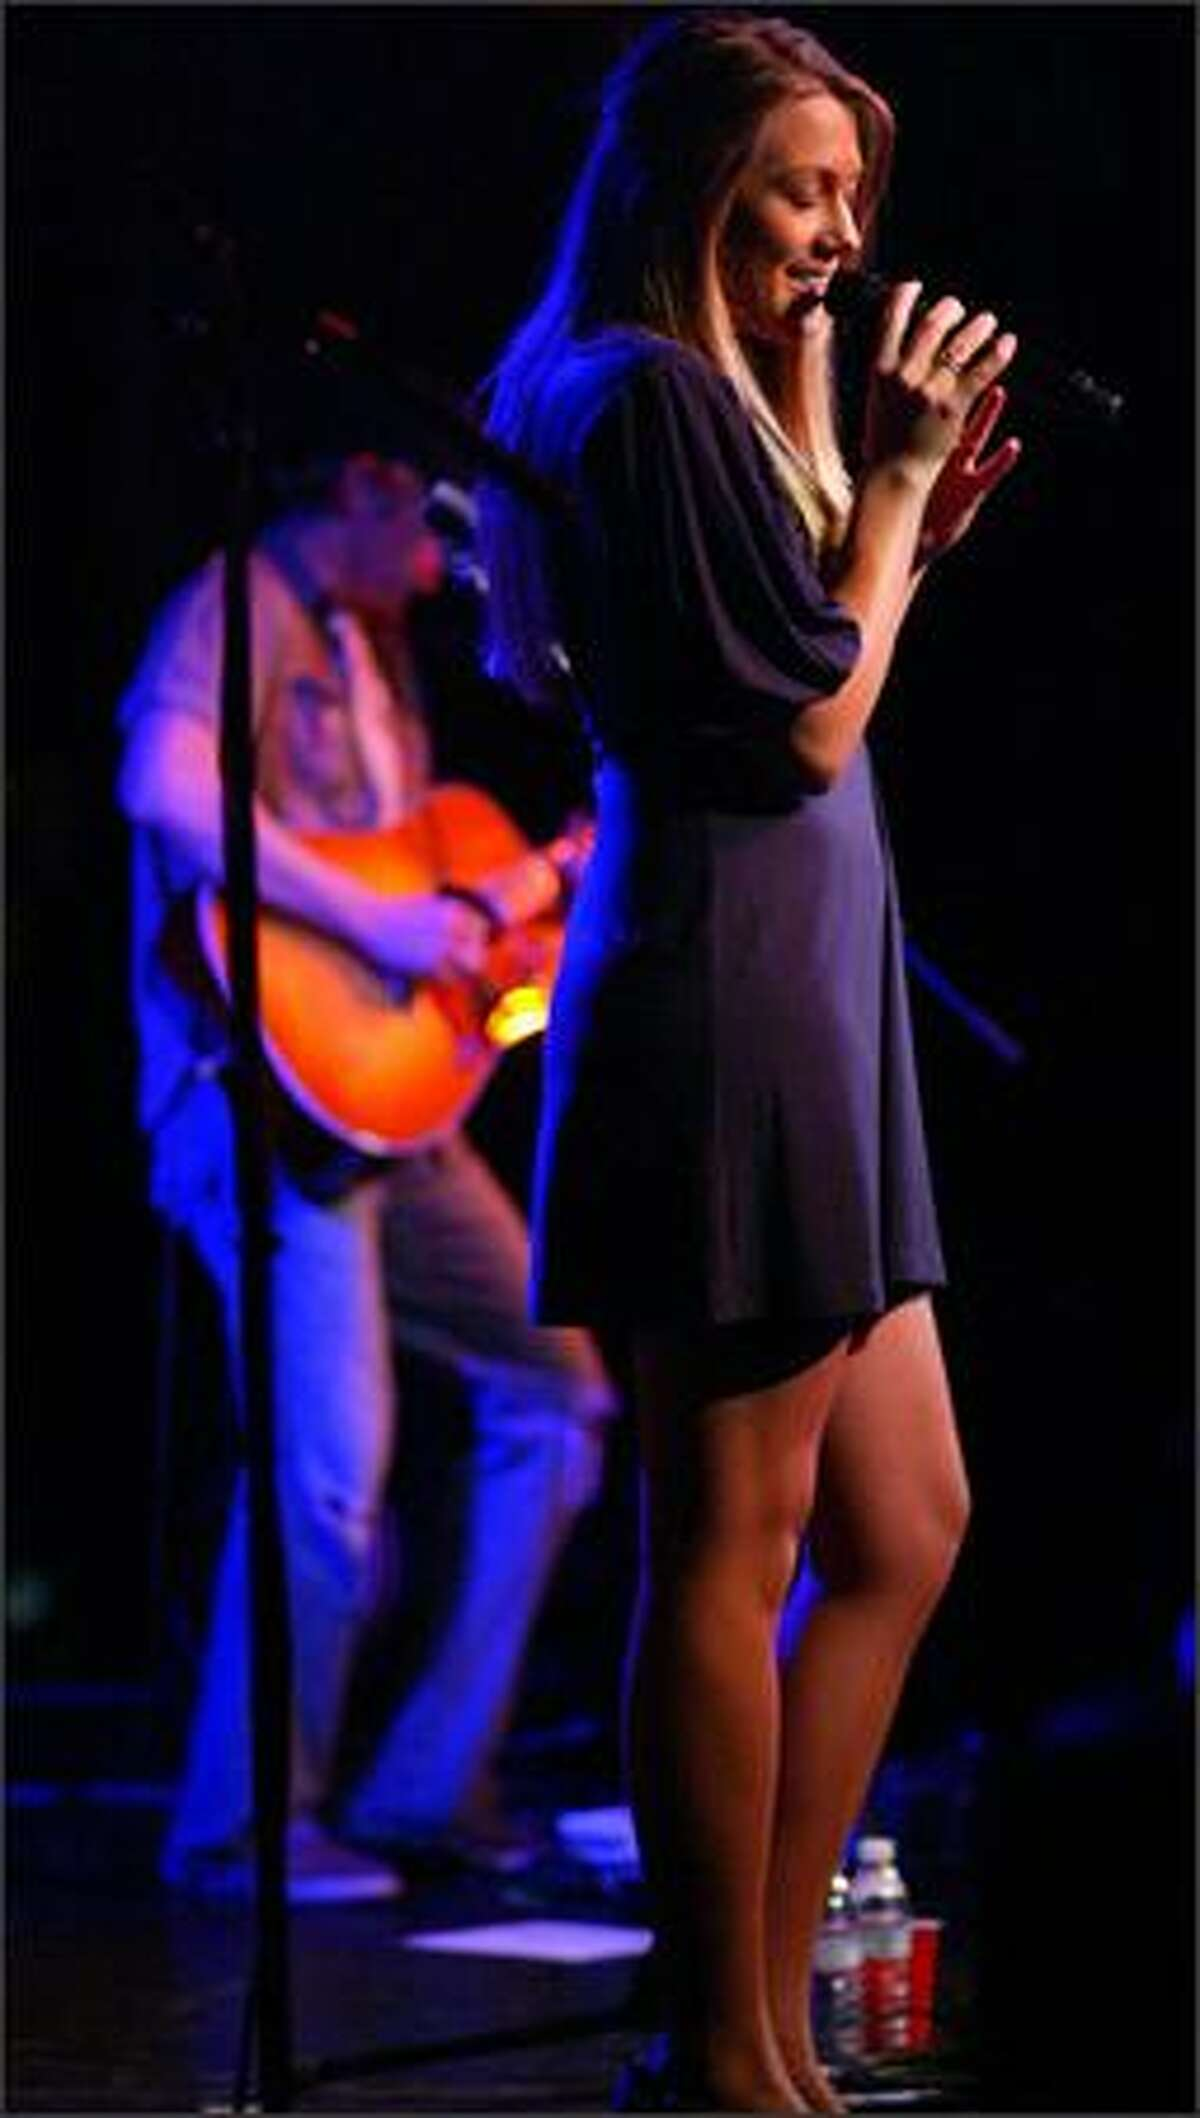 Musician Colbie Caillat performs at the Showbox on Tuesday. Caillat's MySpace profile helped propel her music career.